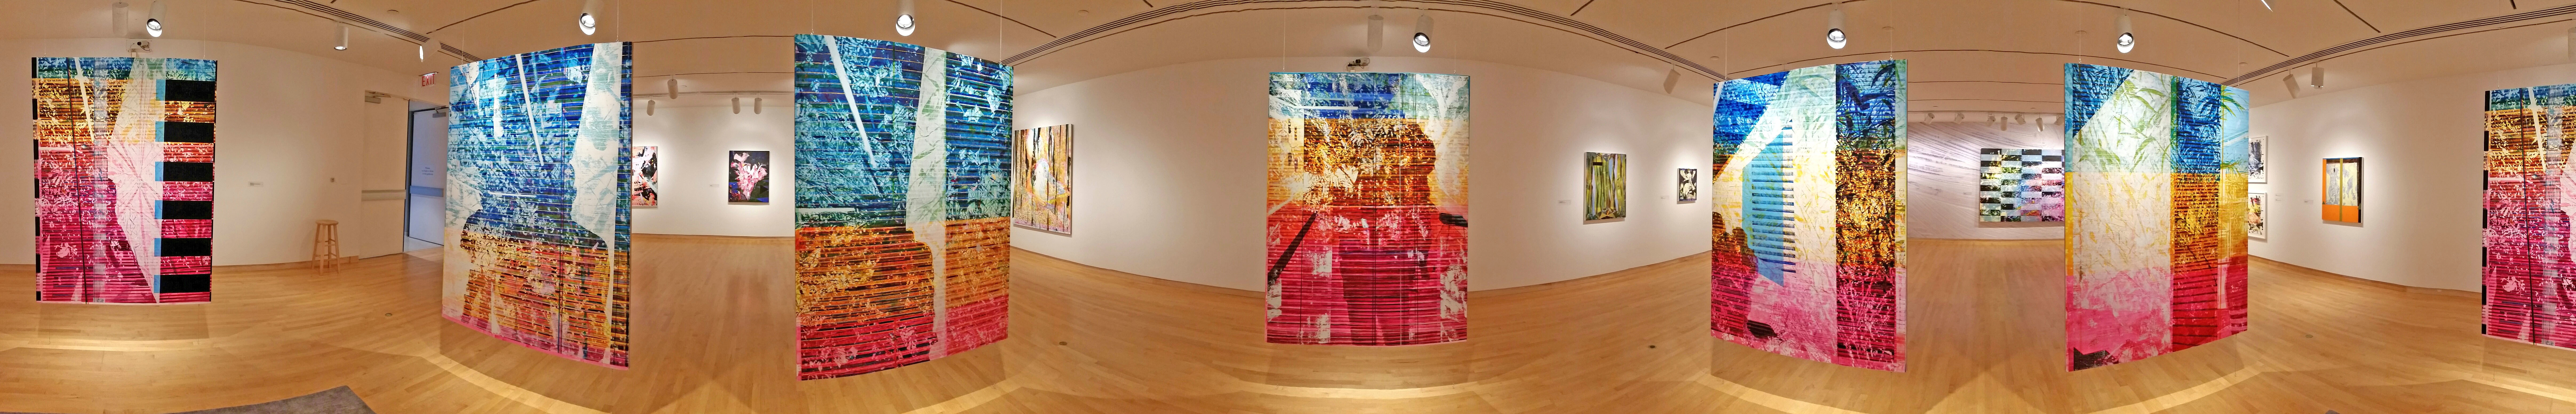 Jered Sprecher, 8.25 Minutes, six oil on linen paintings, wool rug, drawings on paper, various printed images on paper, and hanging hardware, Approximate Dimensions: 20' x 16' x 10', 2017. (Courtesy of Artist)